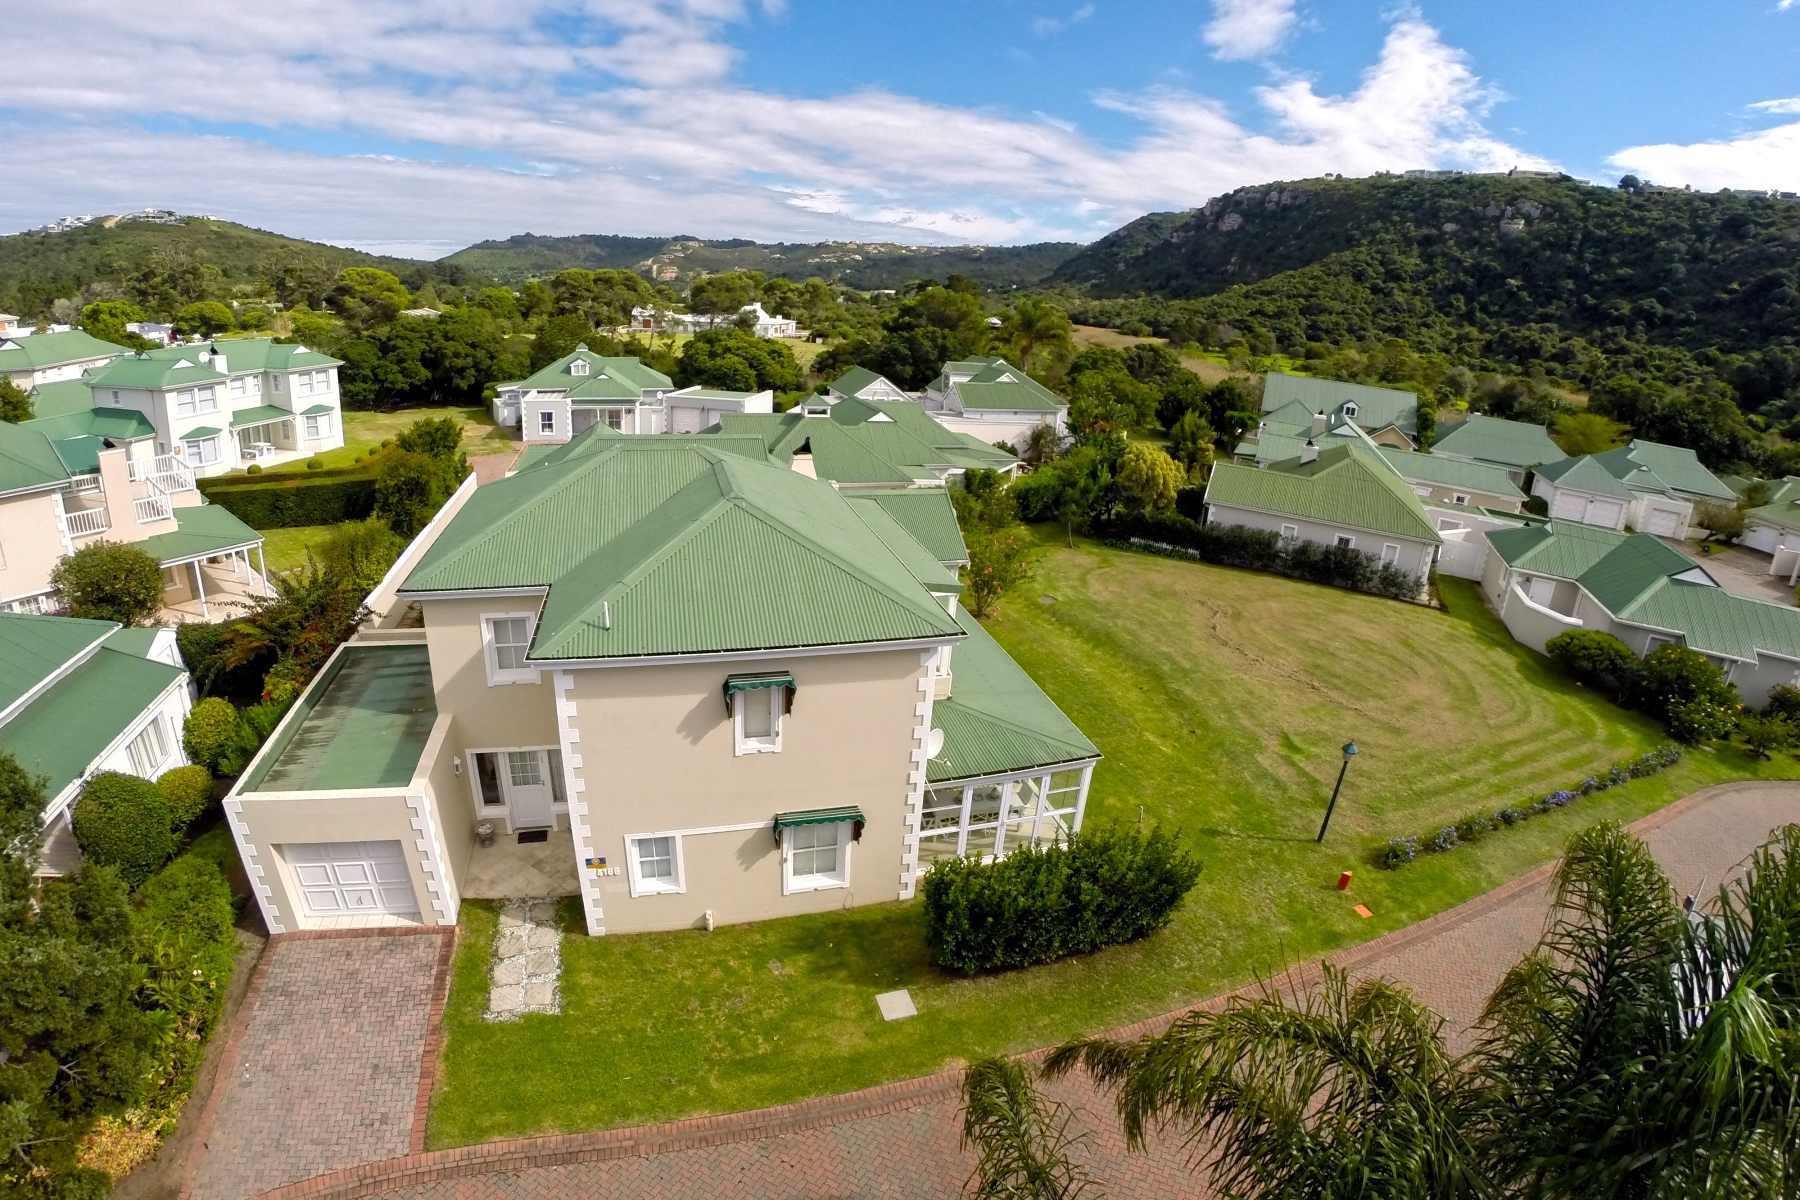 Maison unifamiliale pour l Vente à River Club Garden & Home Plettenberg Bay, Cap-Occidental, 6600 Afrique Du Sud